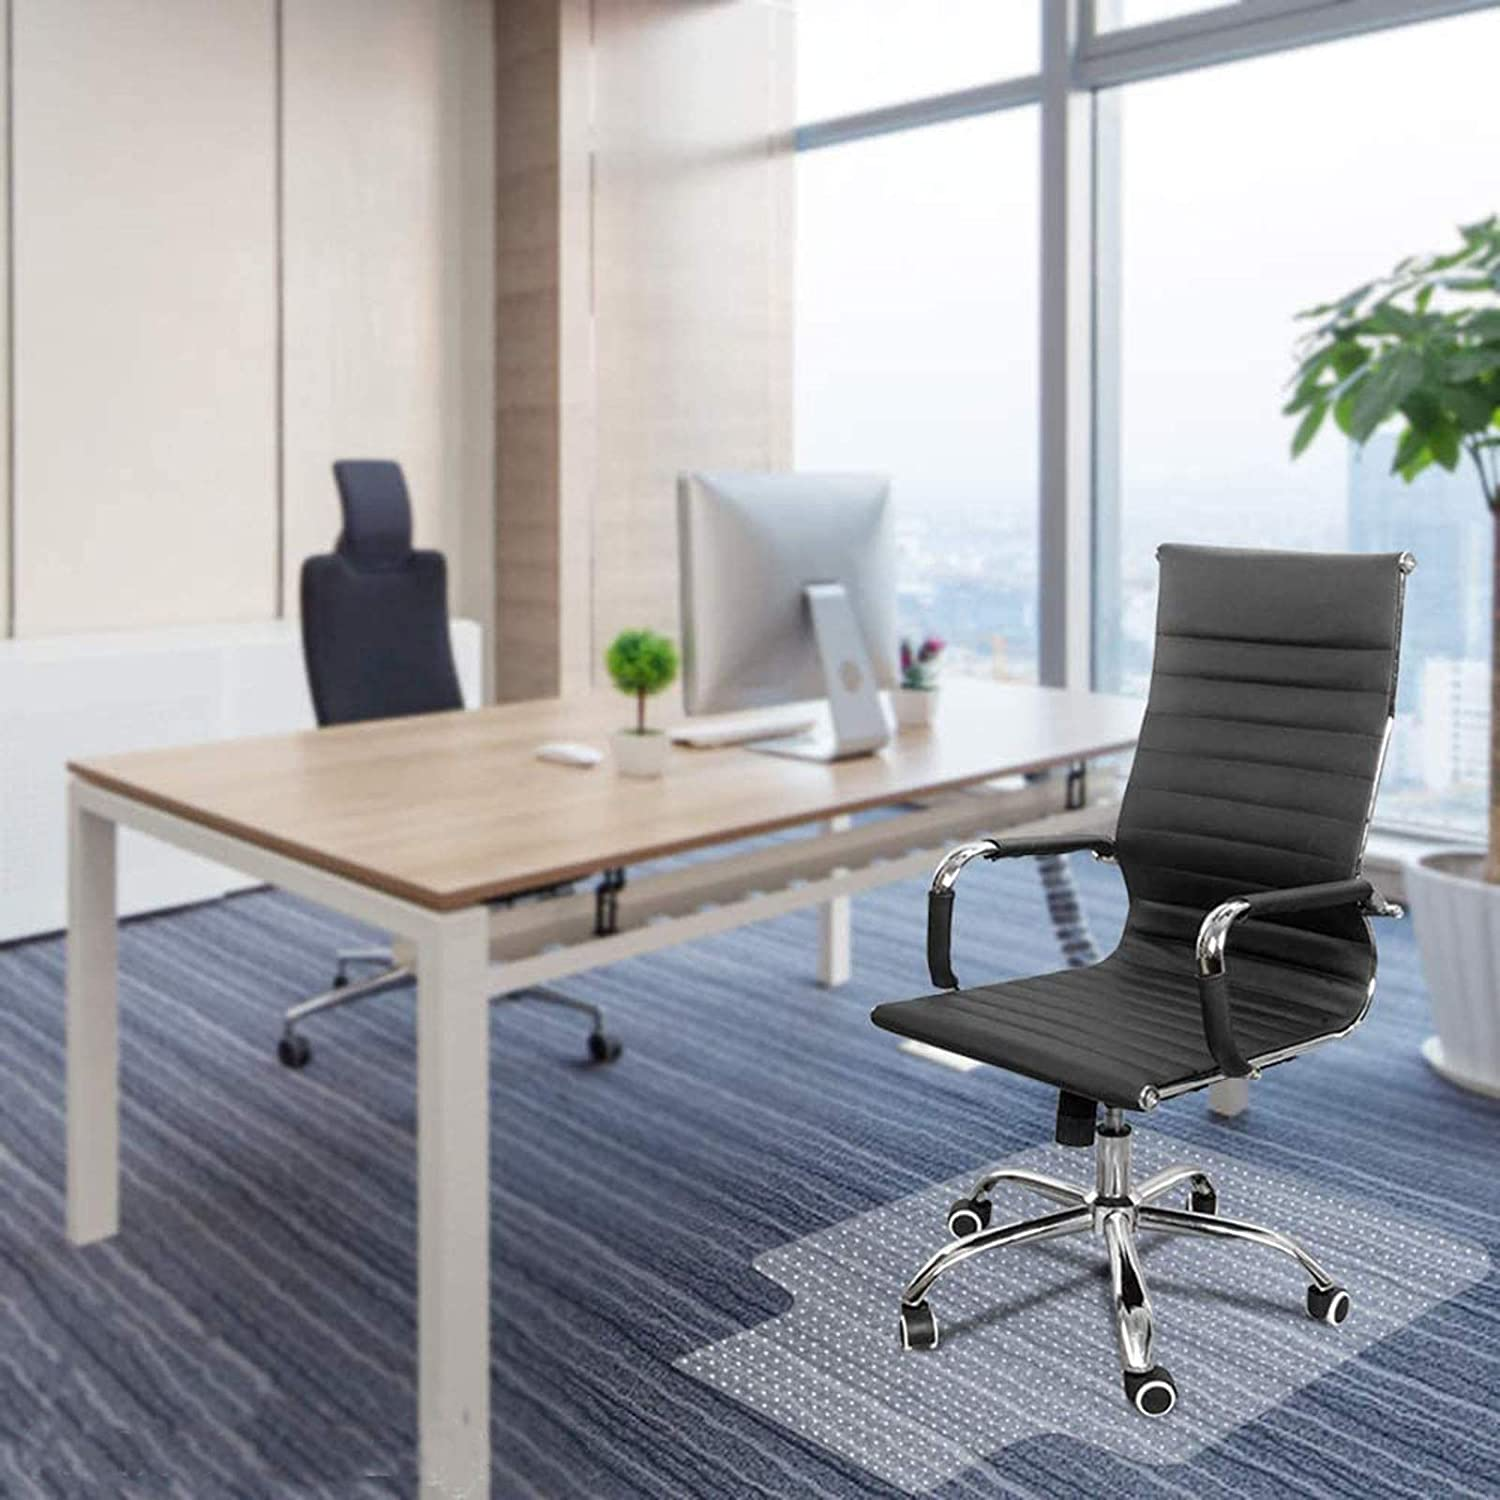 """Kuyal Office Chair Mat for Carpeted Floors, Heavy Duty, Transparent Protects Floors Mats for Low and Medium Pile Carpets 36"""" X 48"""" with Lip, Good for Desks, Office and Home, Clear (with Lip)"""